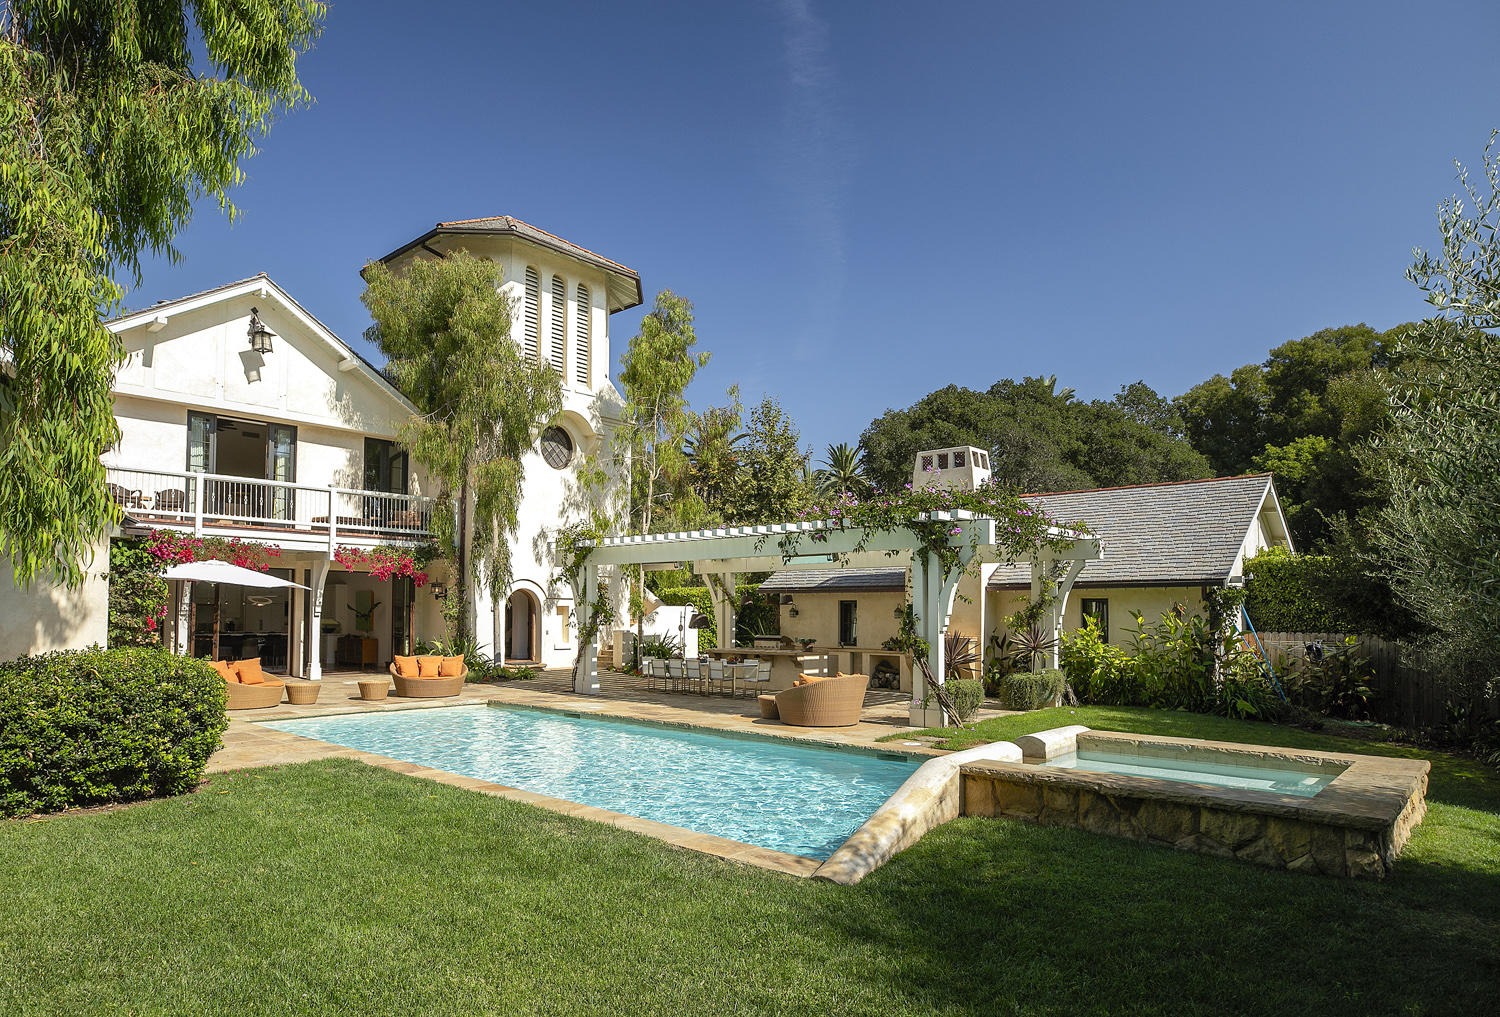 Property photo for 1167 Summit Rd Montecito, California 93108 - 18-3895